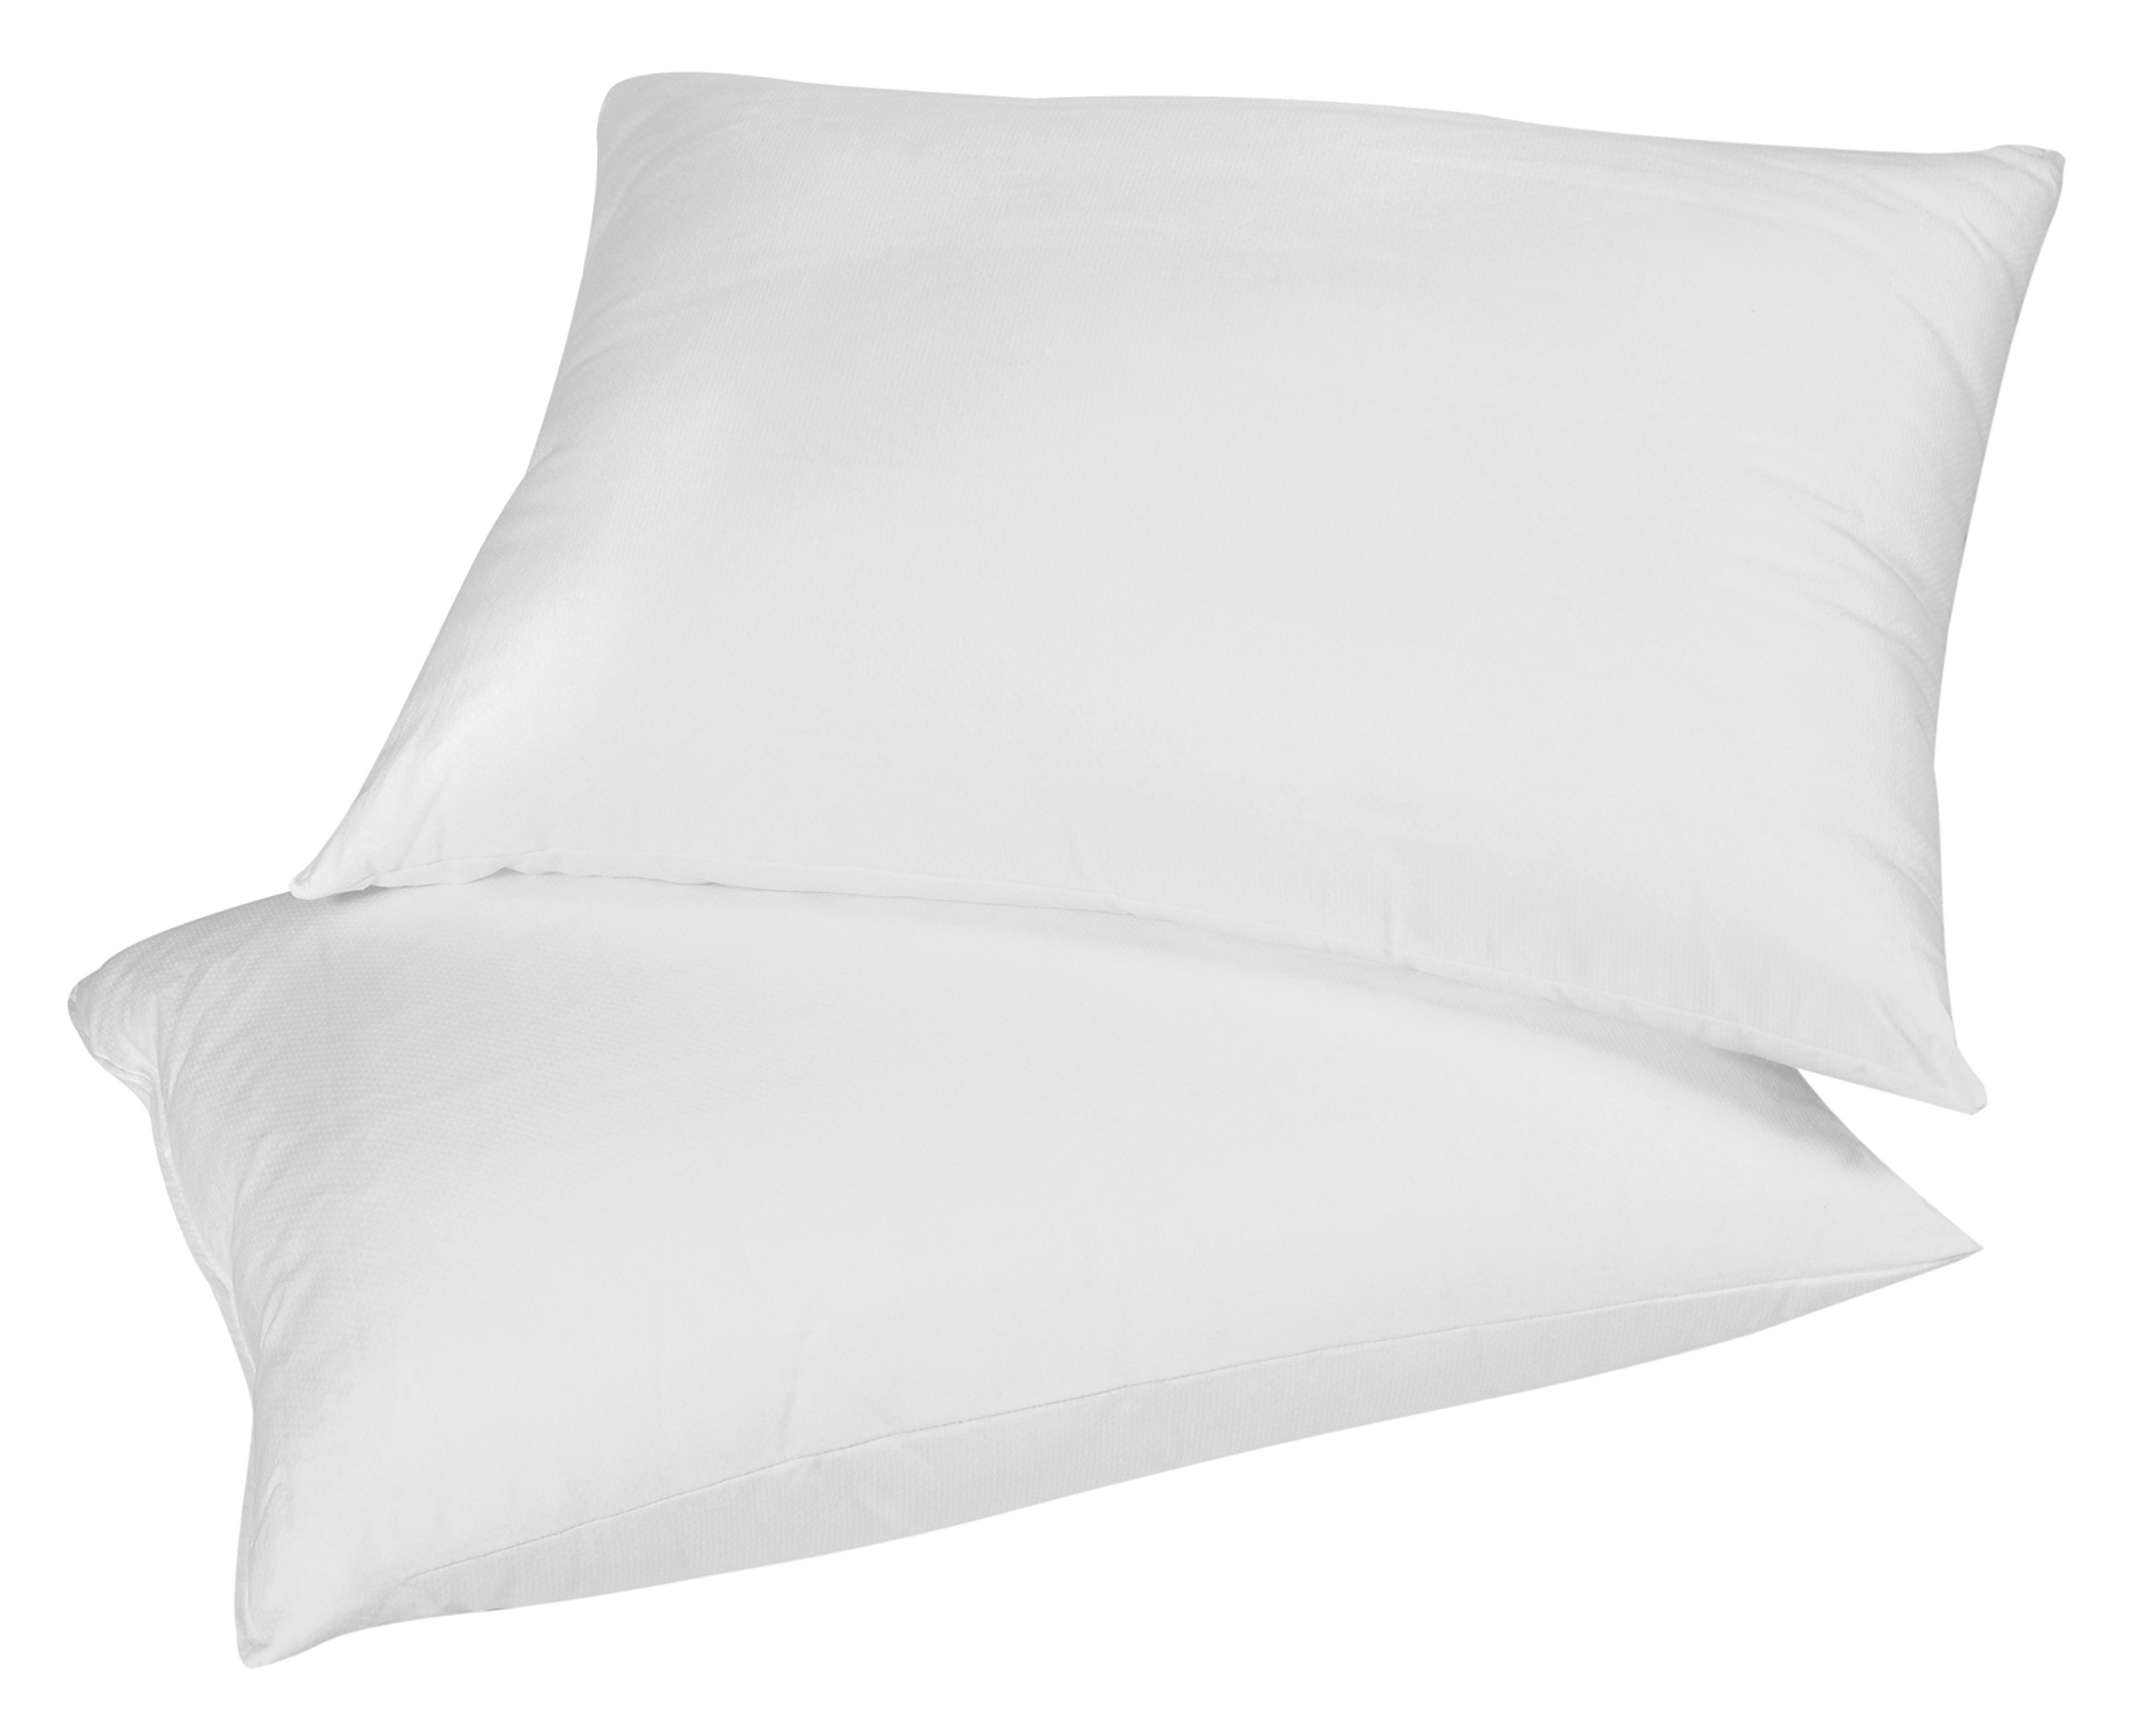 Premium 100% White Goose Down Pillow. Queen Size [Soft] (Set of 2) by Continental Bedding